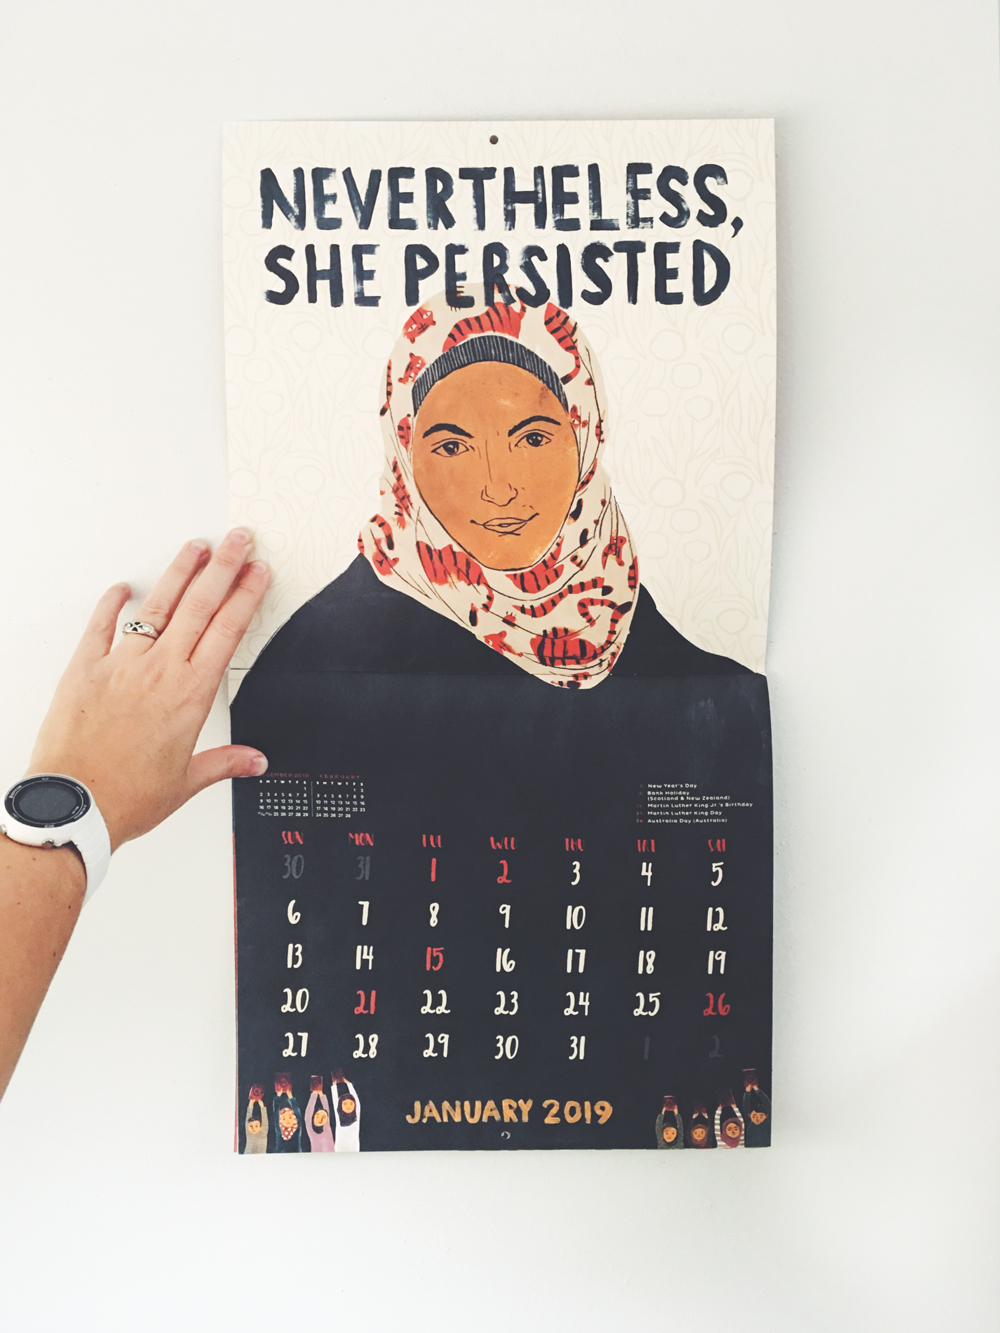 futureisfemale_calendar_nevertheless_dullaghan.jpg